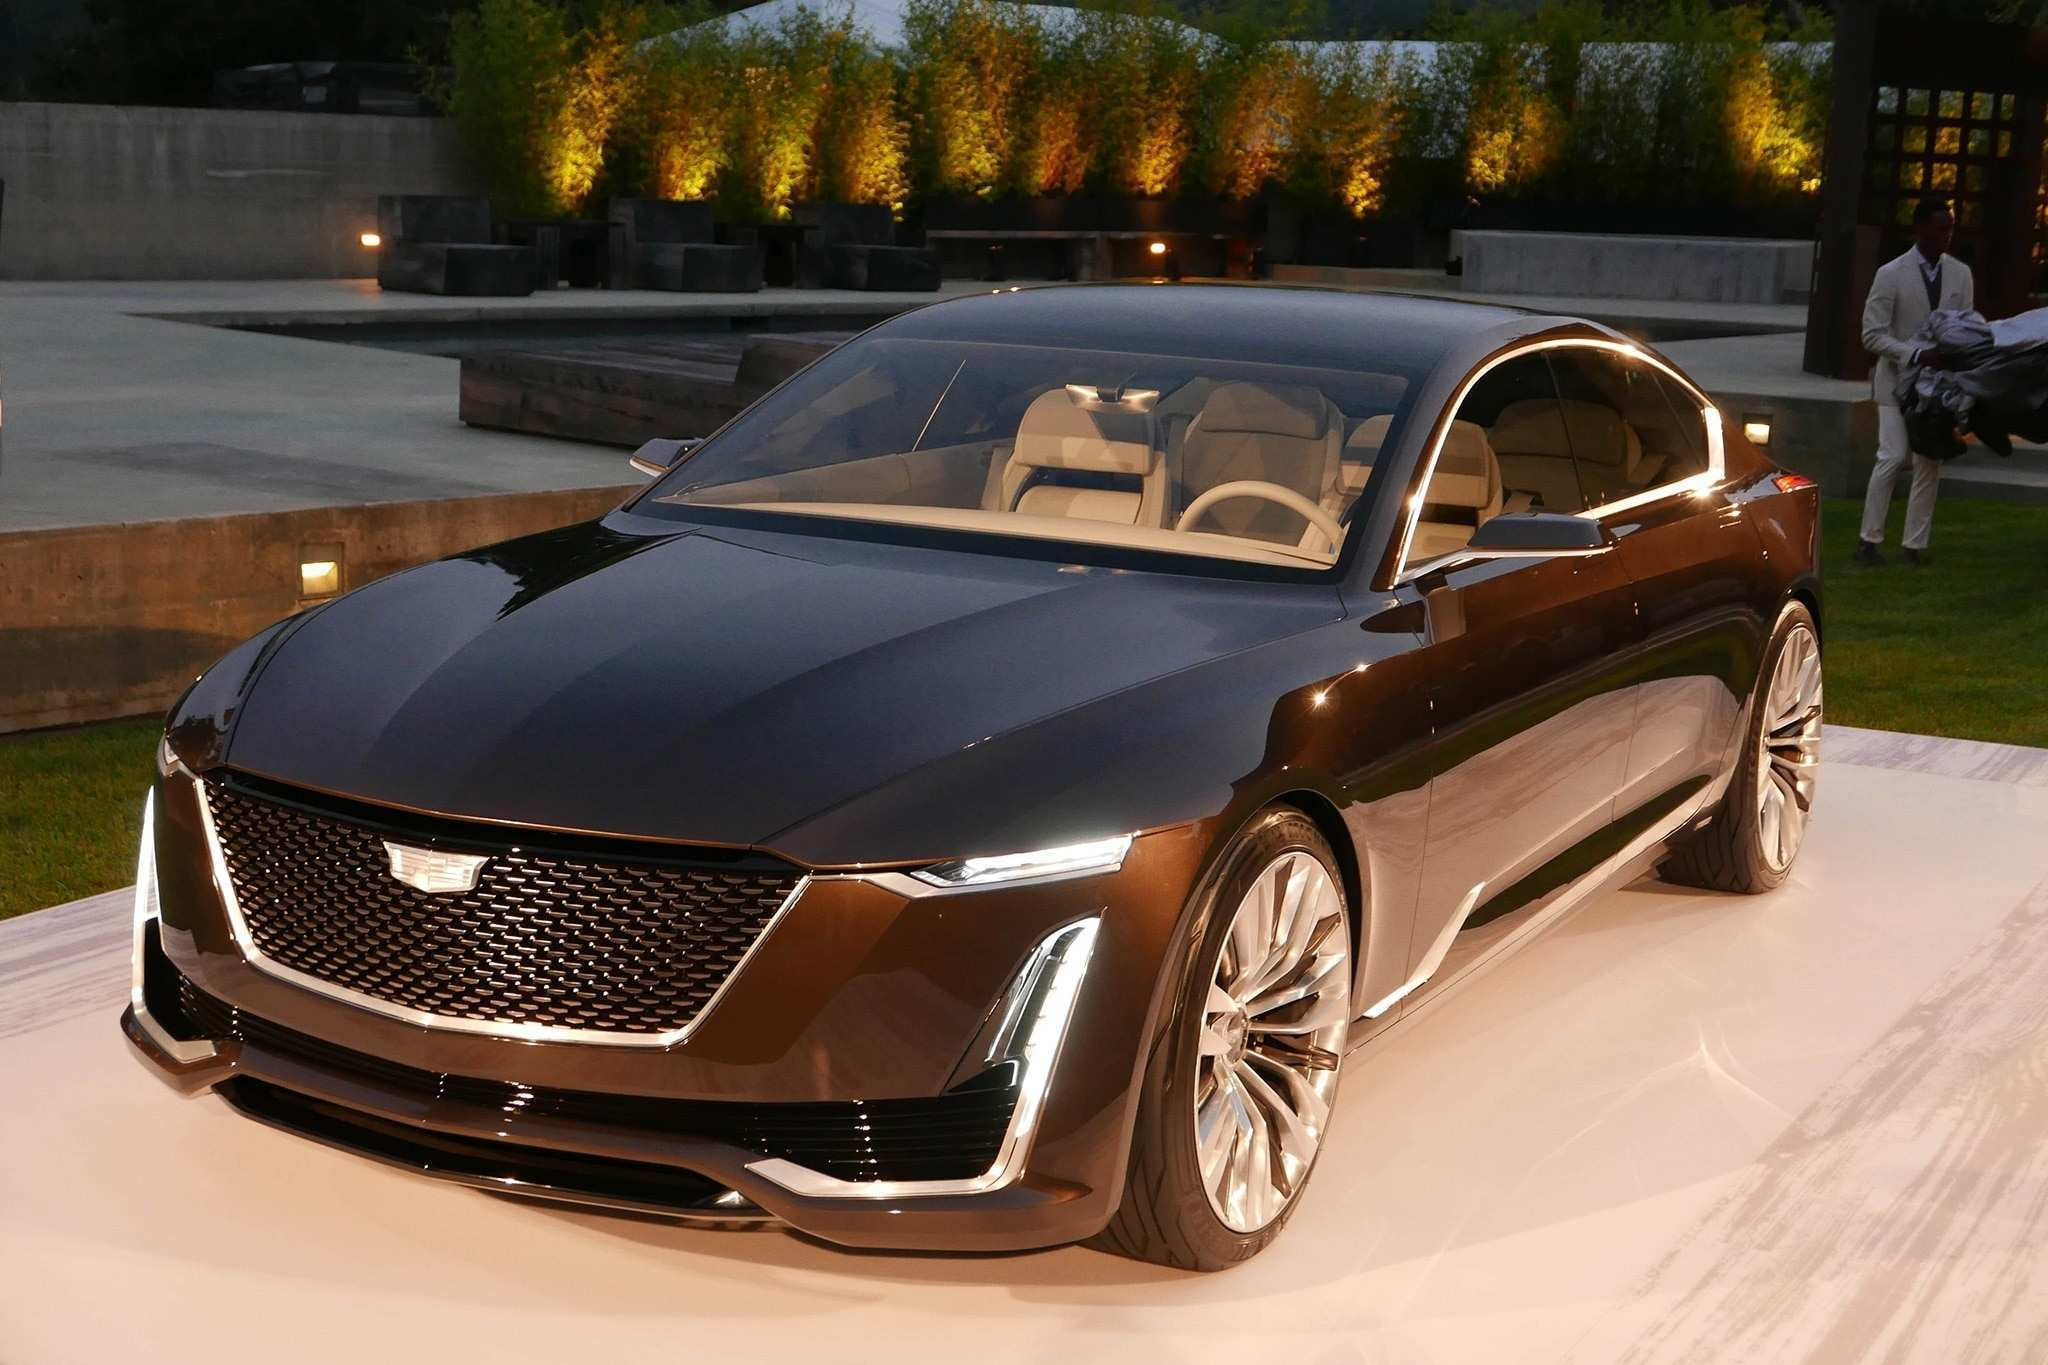 89 A 2020 Cadillac Ext Overview